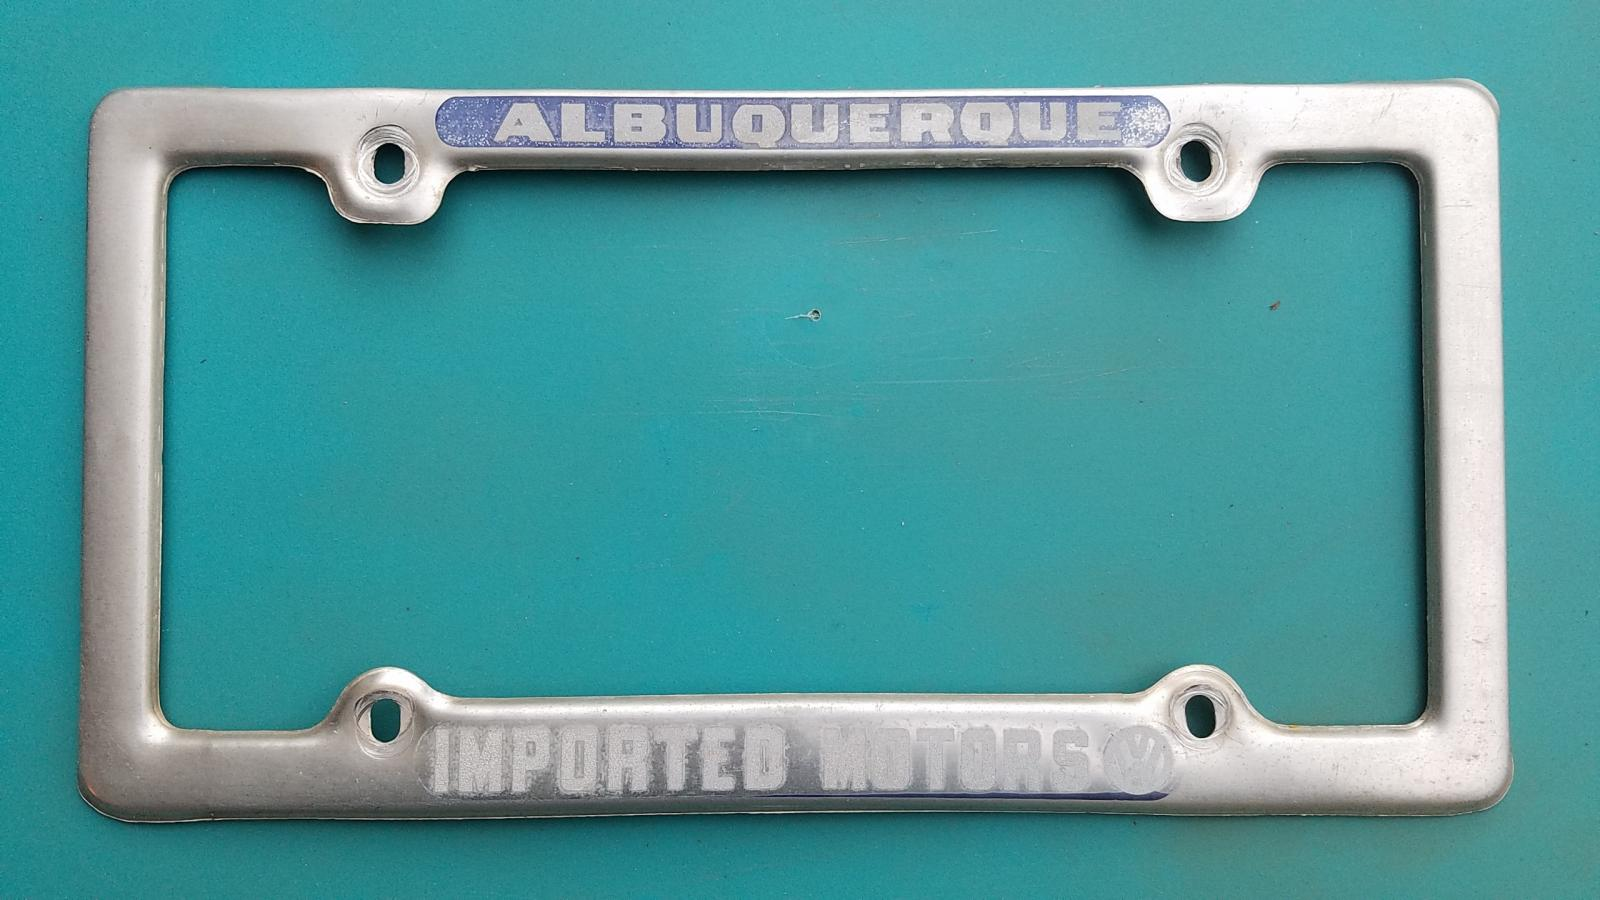 Imported Motors, Inc Licence Plate